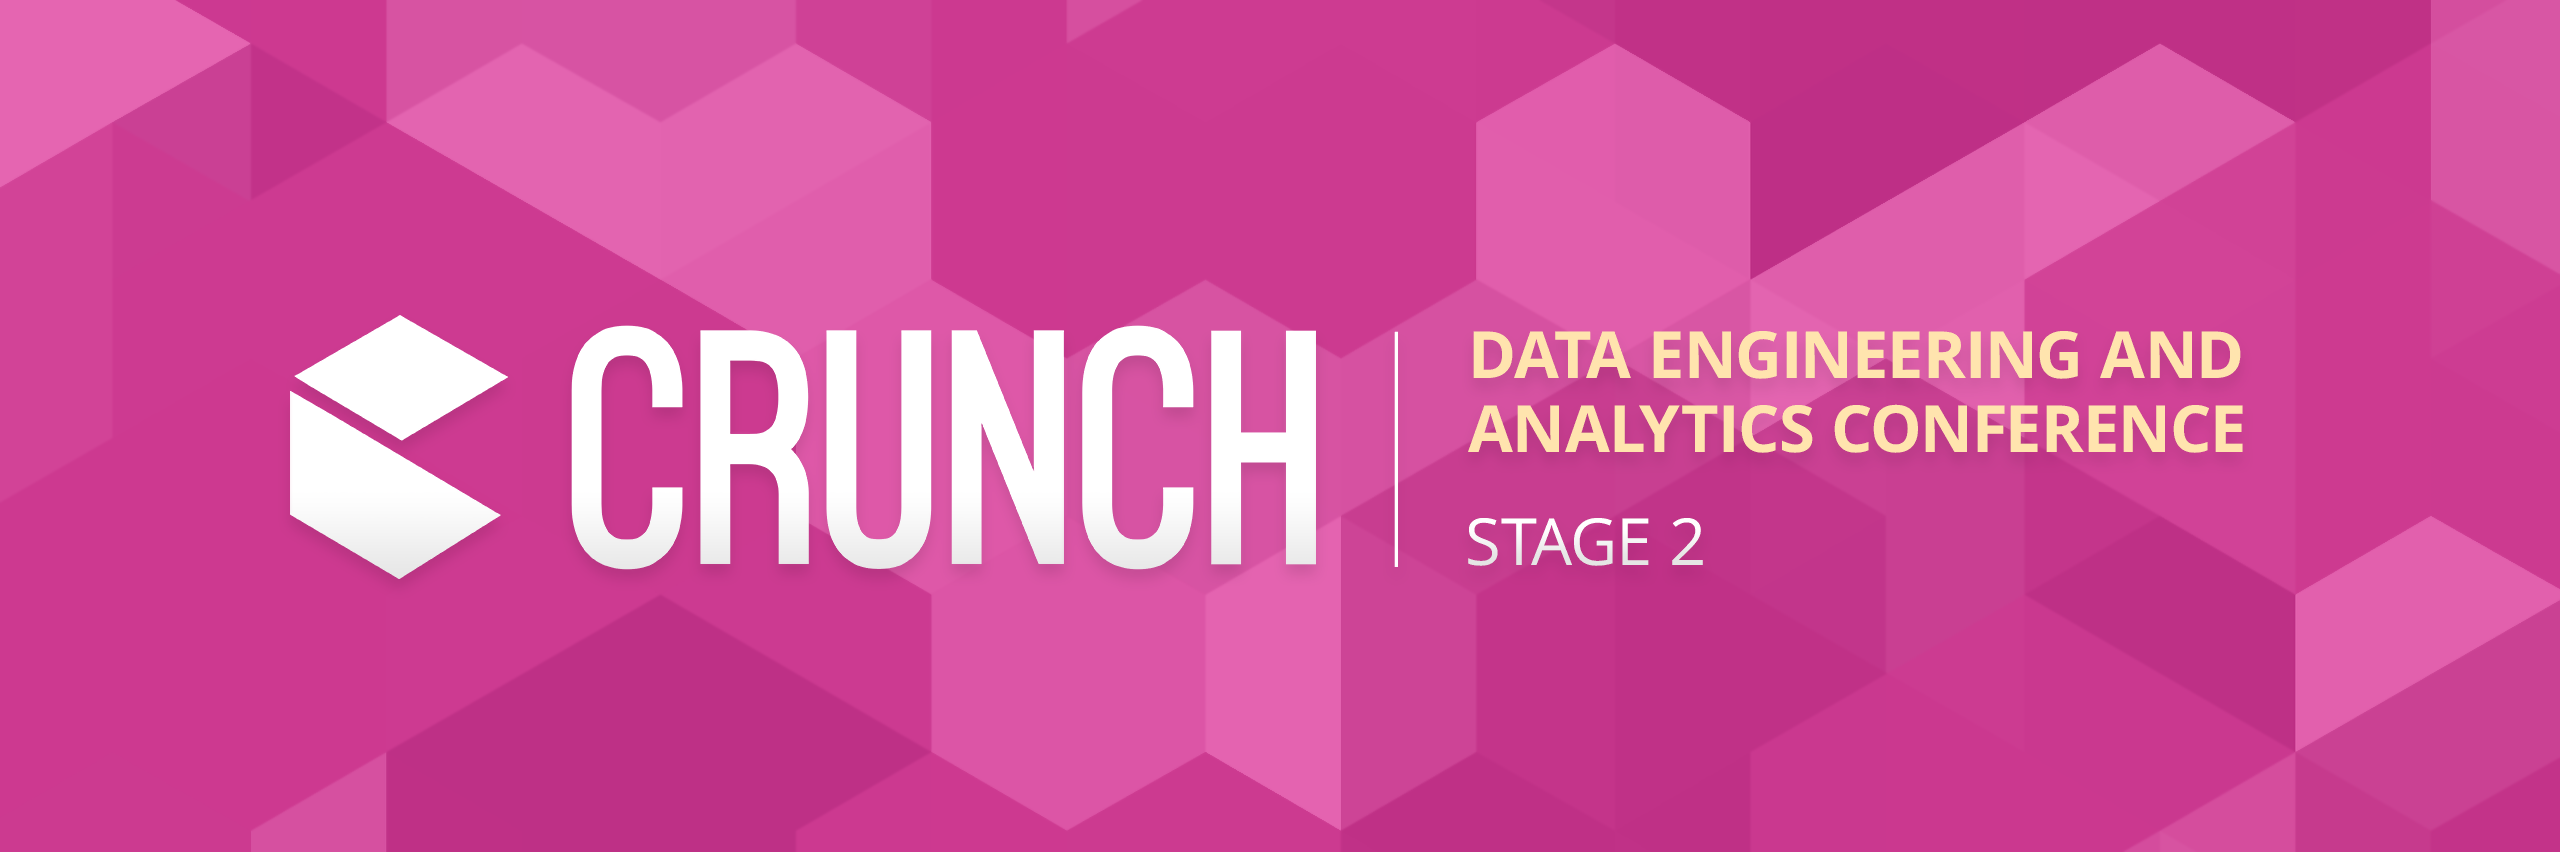 Crunch Data Conference - Stage 2